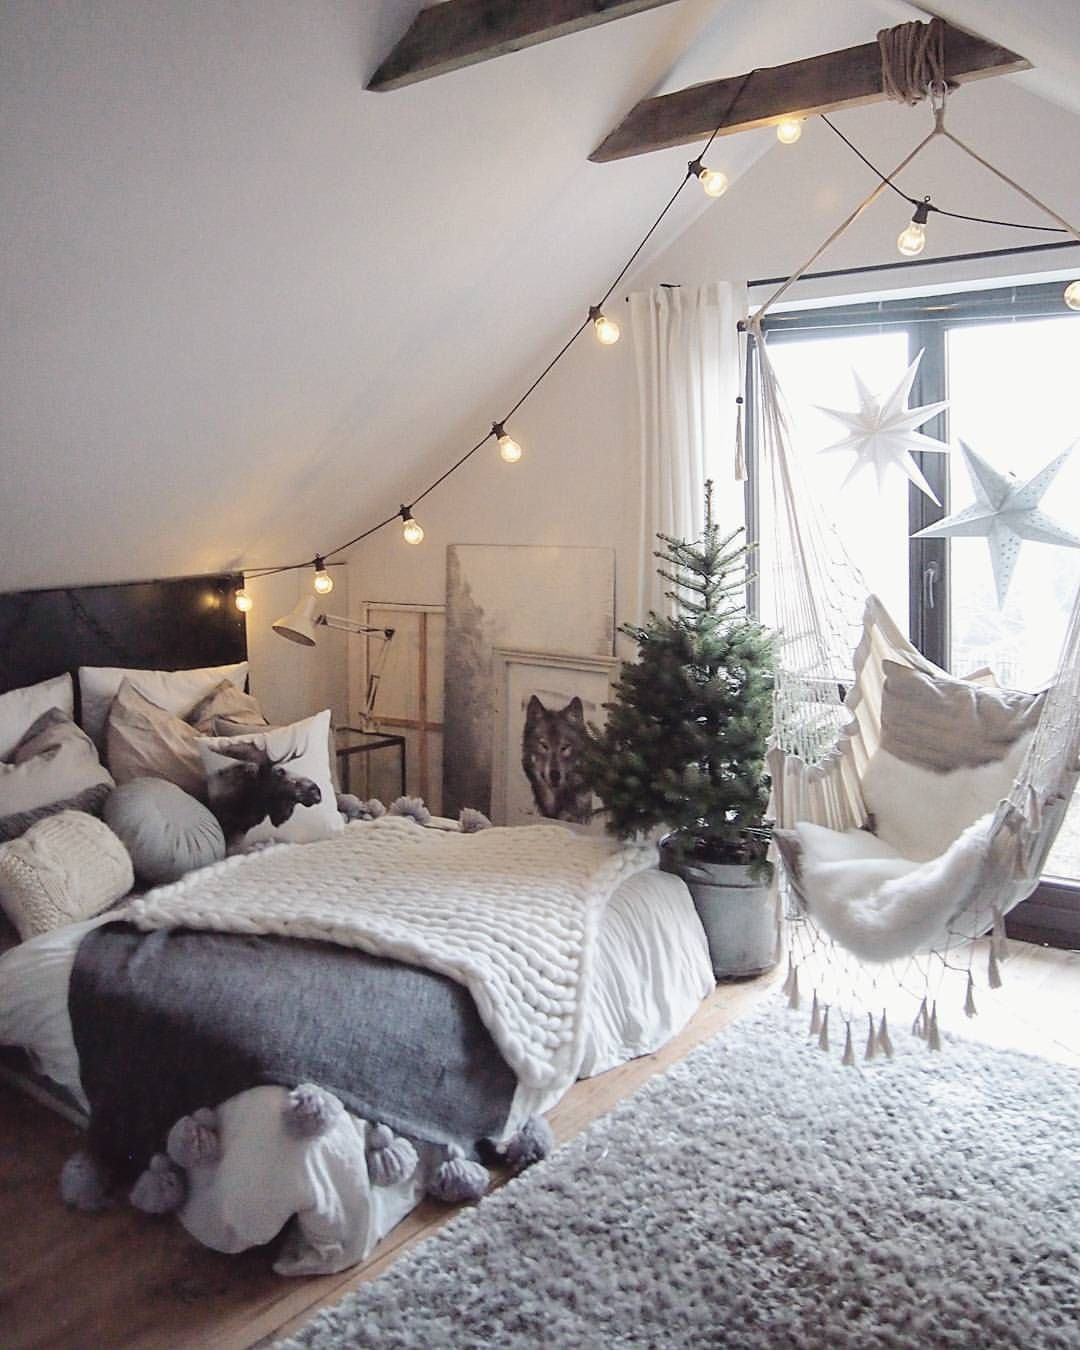 Ultra-cozy bedroom decorating ideas for winter warmth